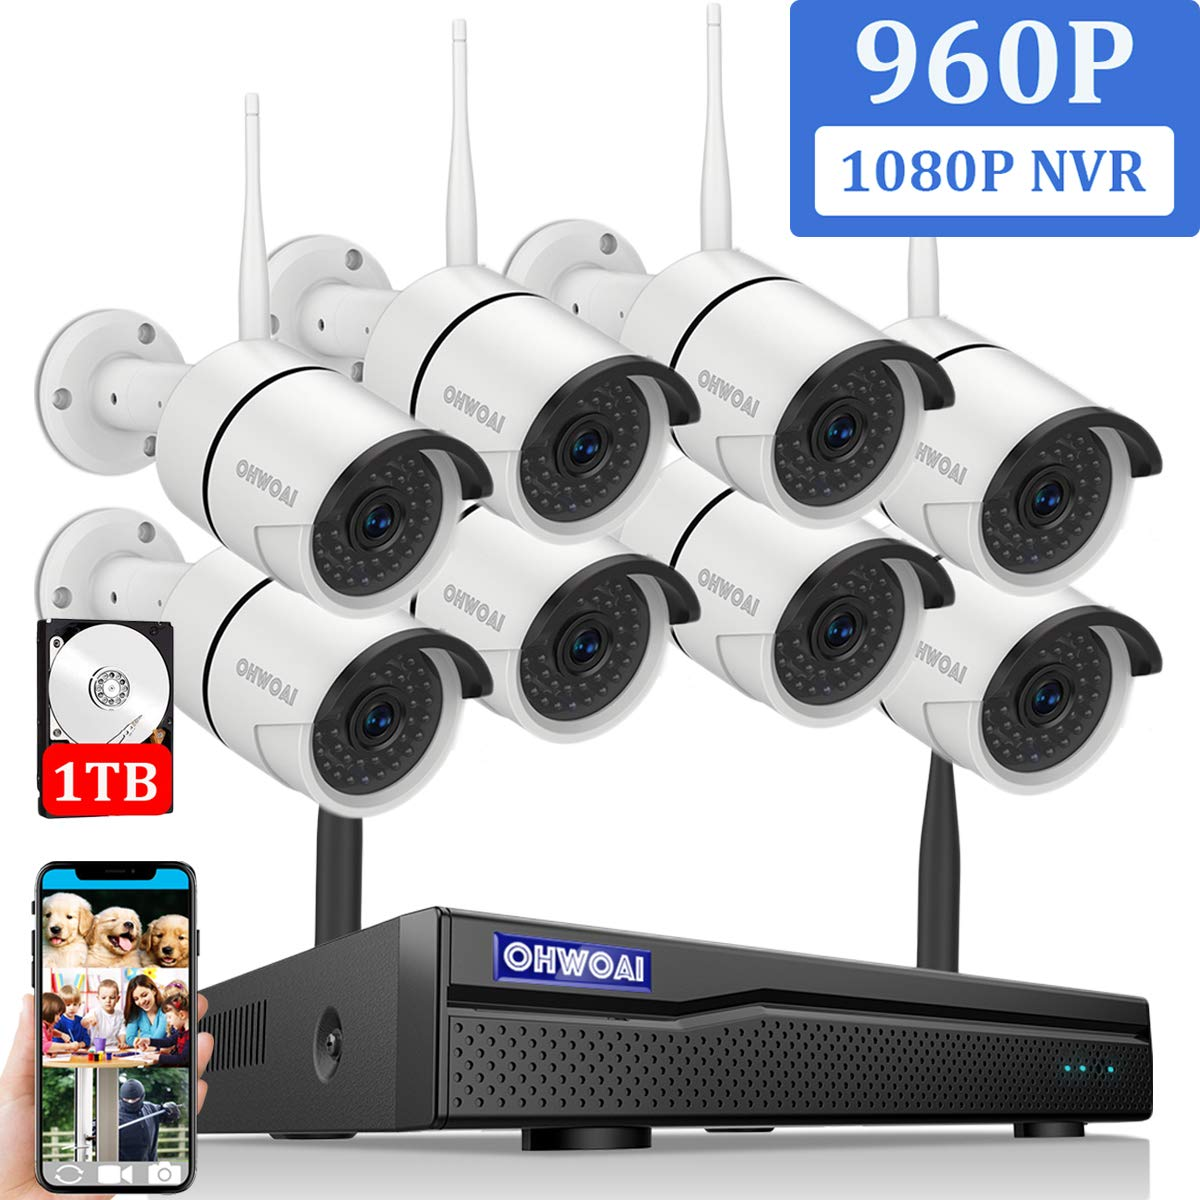 【2019 Newest】OHWOAI Security Camera System Wireless, 8CH 1080P NVR,8Pcs 960P HD Outdoor/ Indoor IP Cameras,Home CCTV Surveillance System(1TB Hard Drive)Waterproof,Remote Access,Plug&Play,Night Vision. by OHWOAI